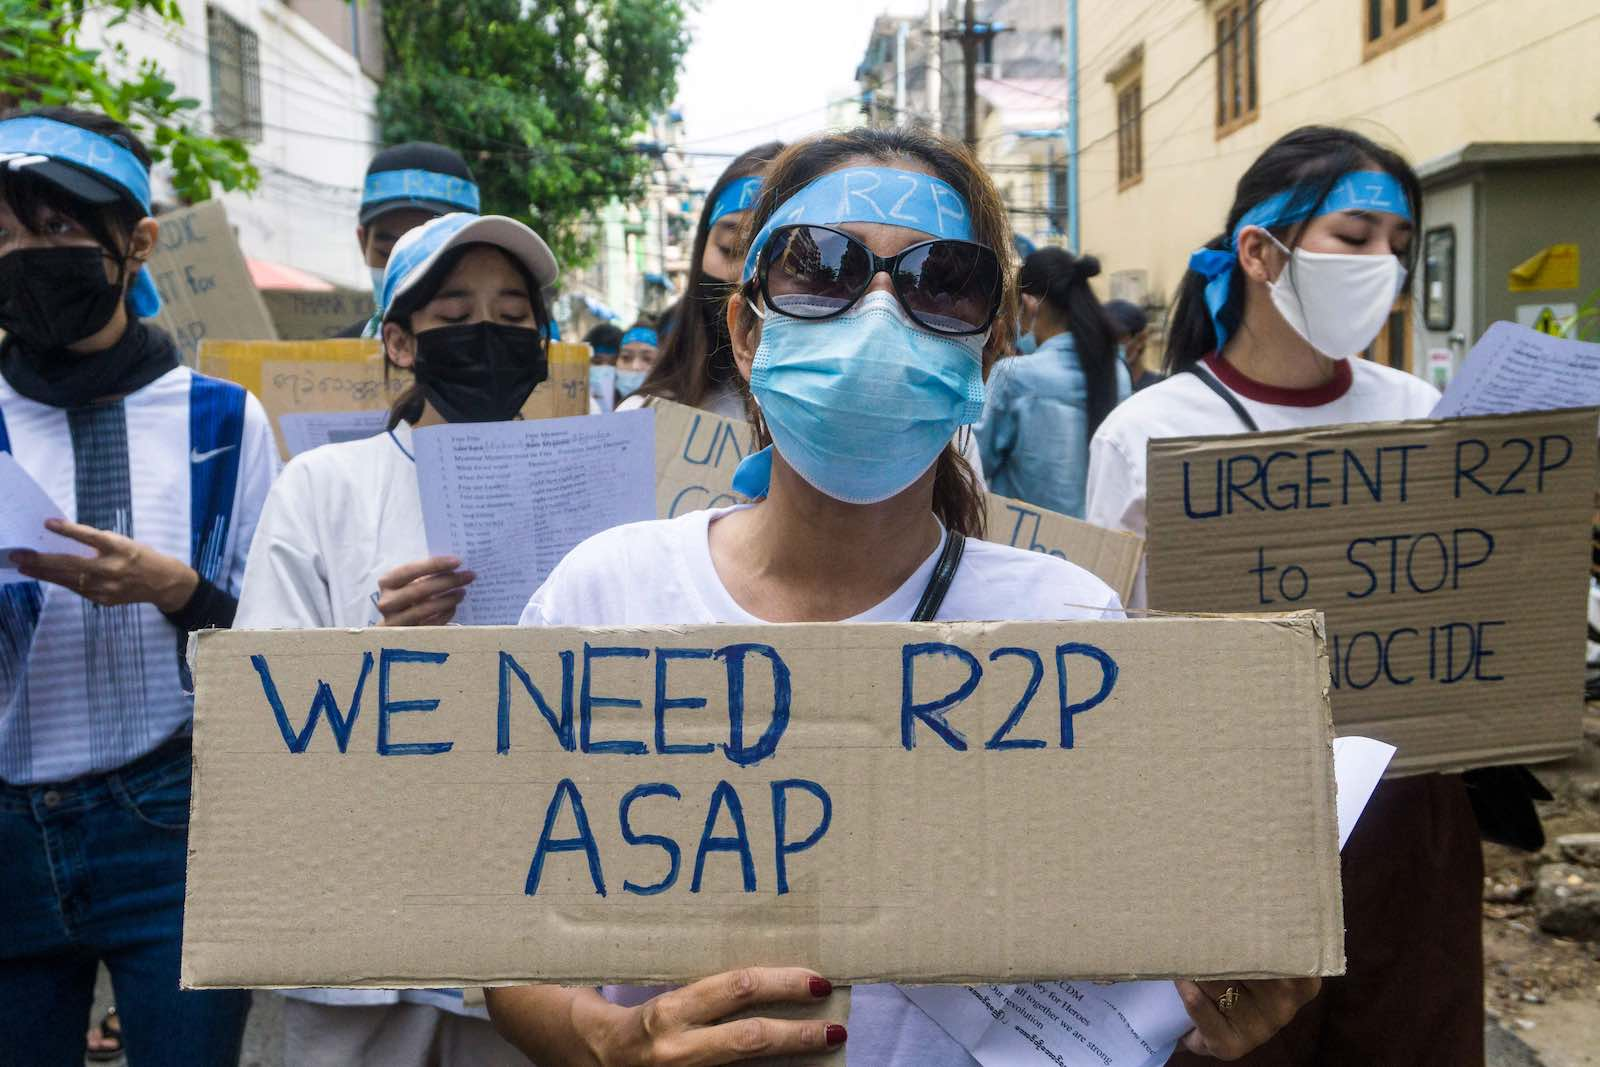 Protesters against the military coup in Myanmar call for international intervention, Yangon, 12 April 2021 (STR/AFP via Getty Images)